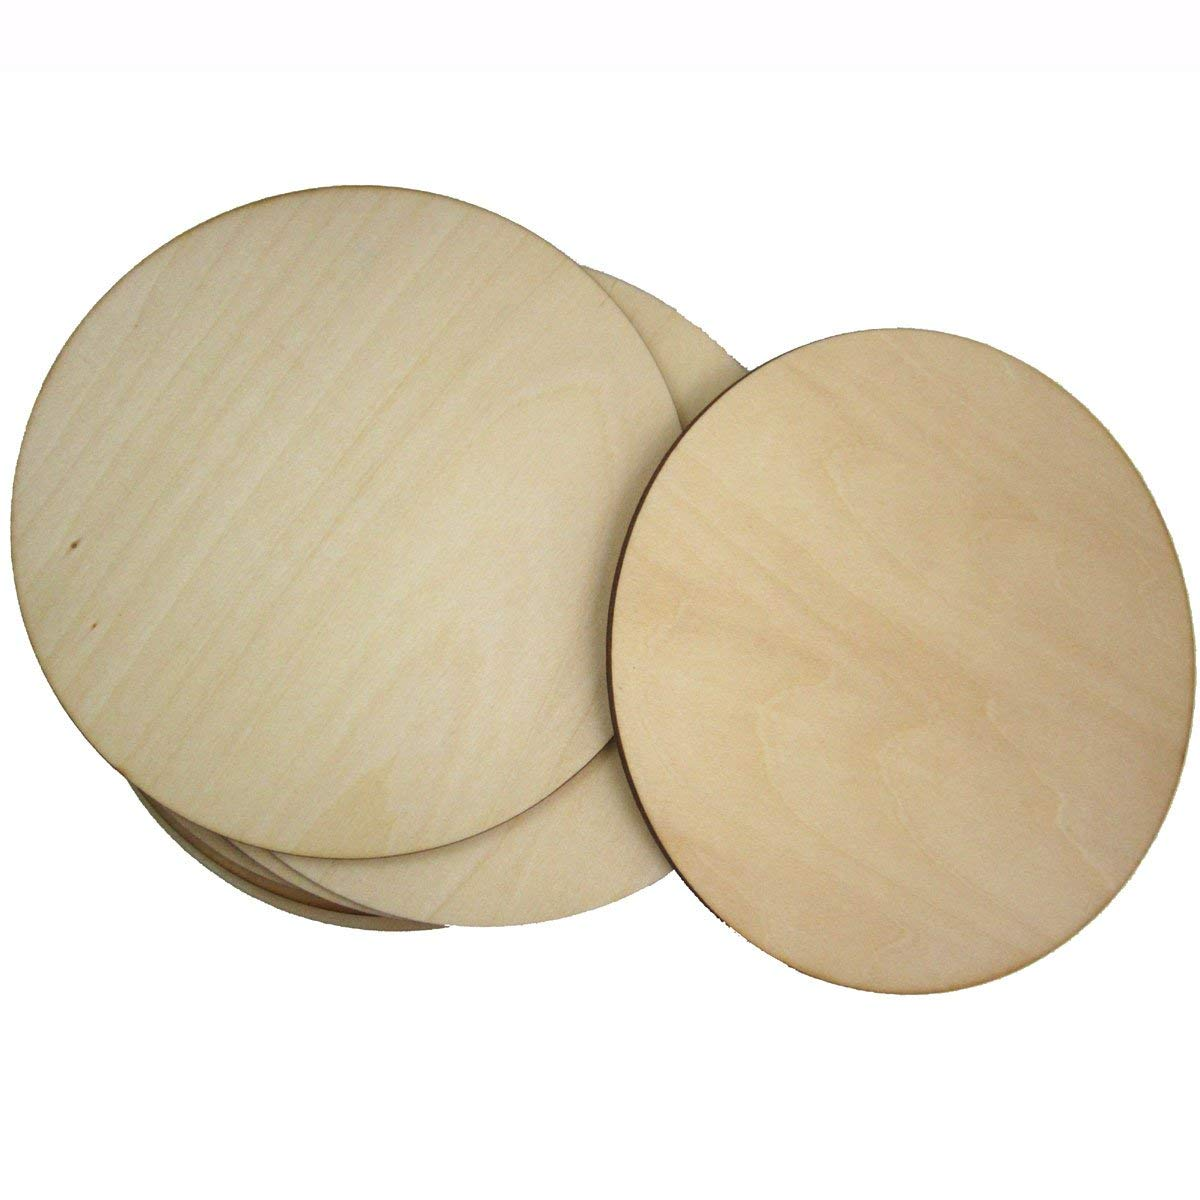 WINGONEER 10pcs 3mm Thick Basswood Round Wooden Disc Blank Wood Cutout for Creating Jewelry Painted Christmas Tree Decorated craft Projects - Diameter 15cm